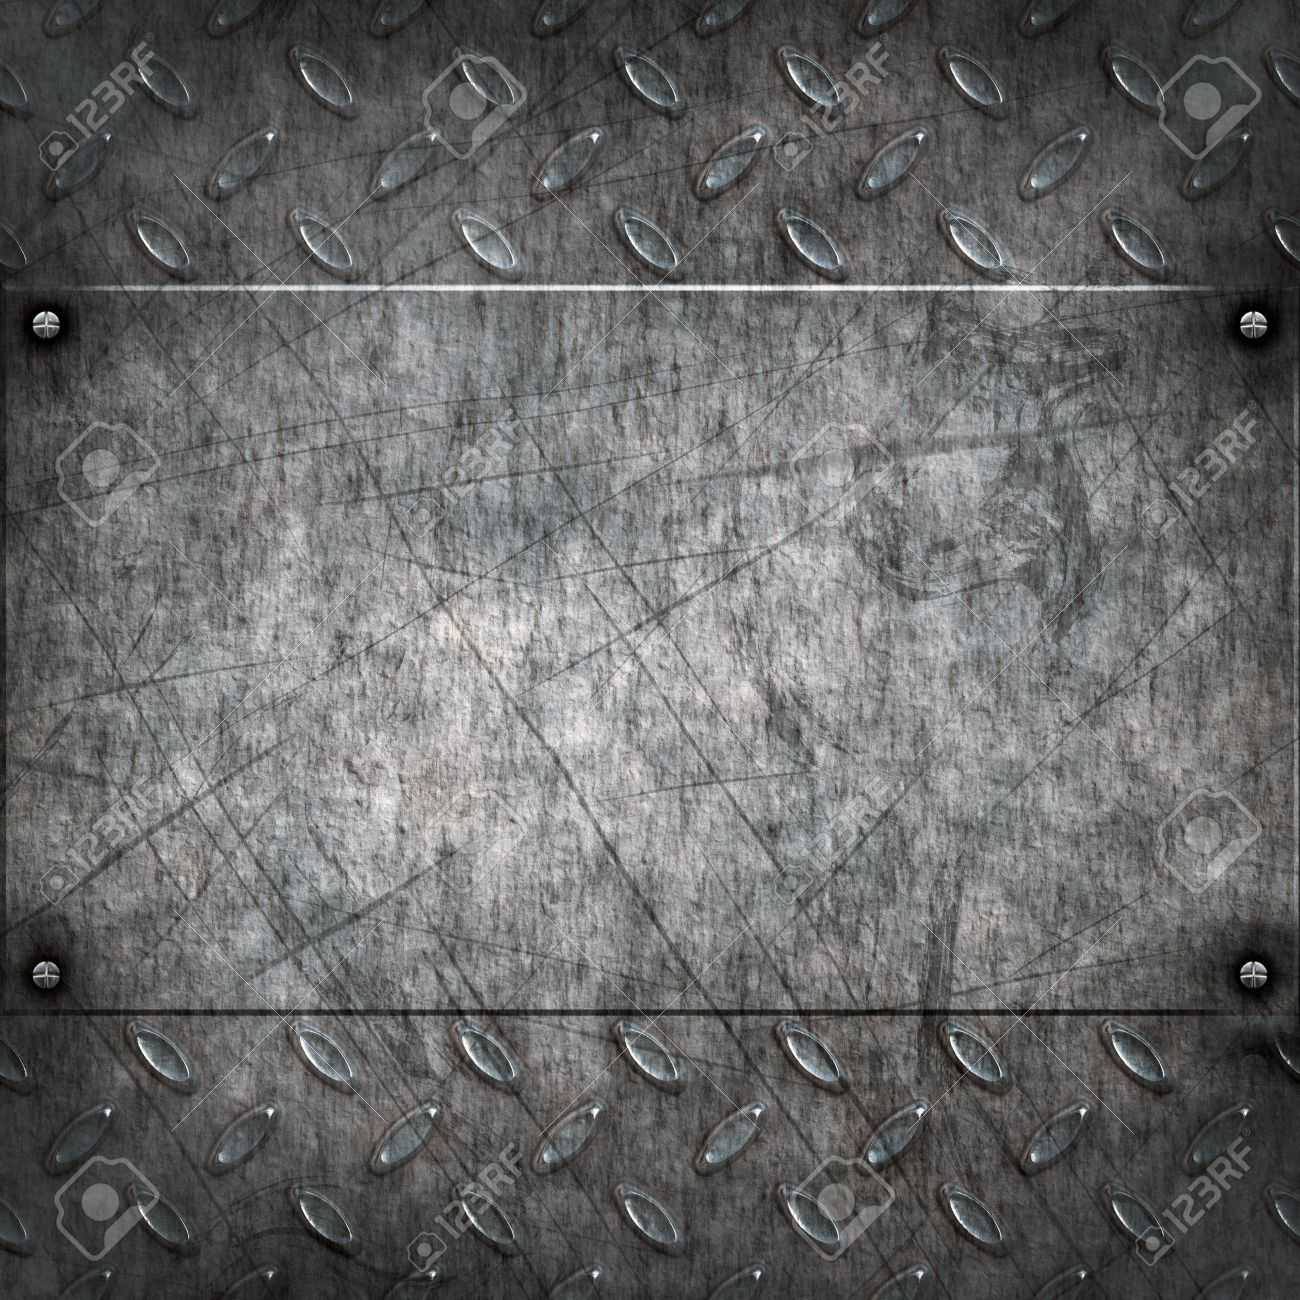 old dirty and grungy diamond plate metal background Stock Photo - 7195522